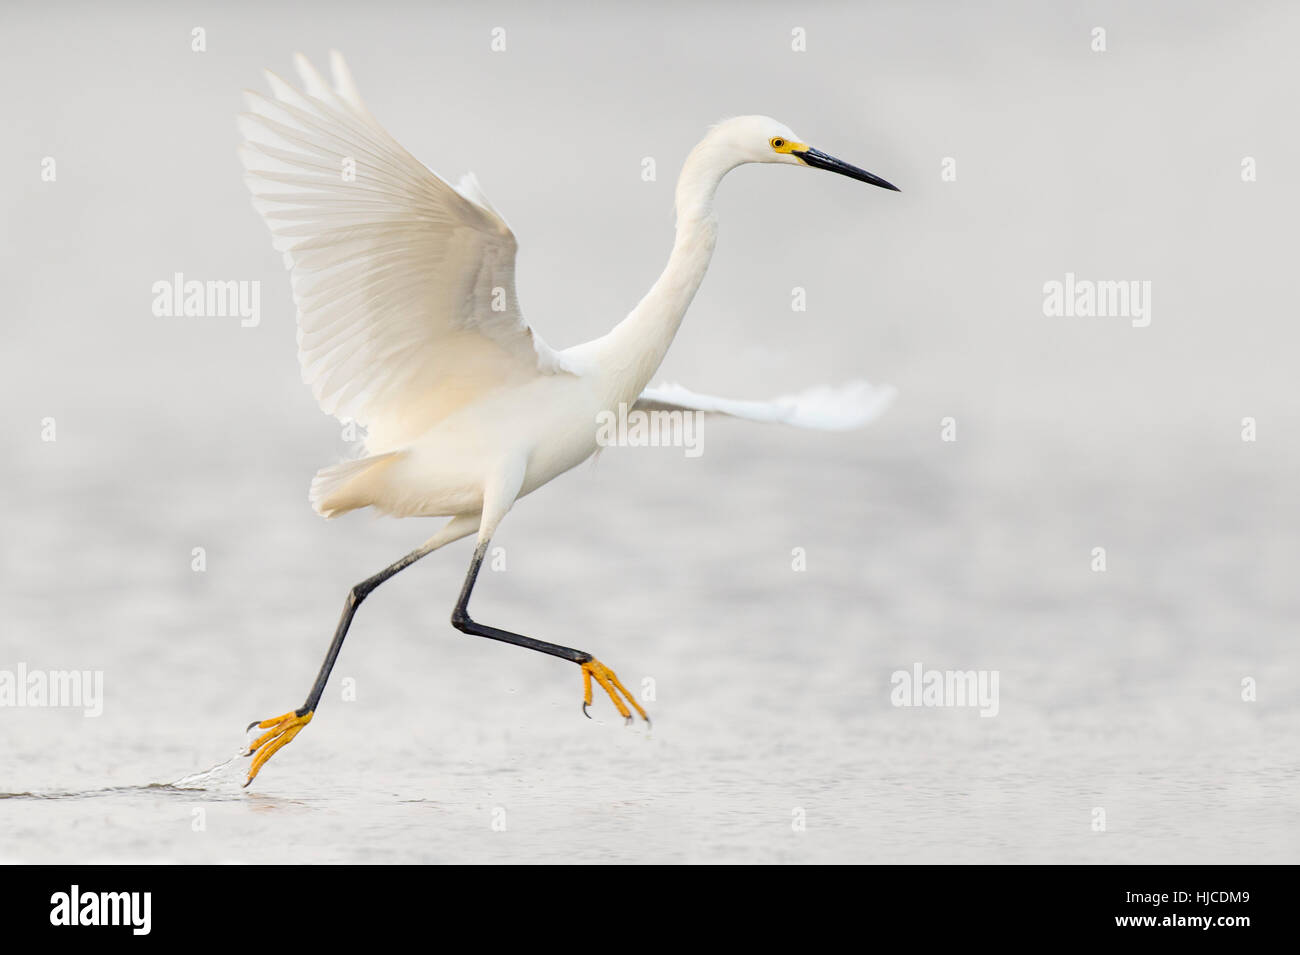 A Snowy Egret jumps and flaps around as it searches for food in the shallow water on an overcast day. - Stock Image